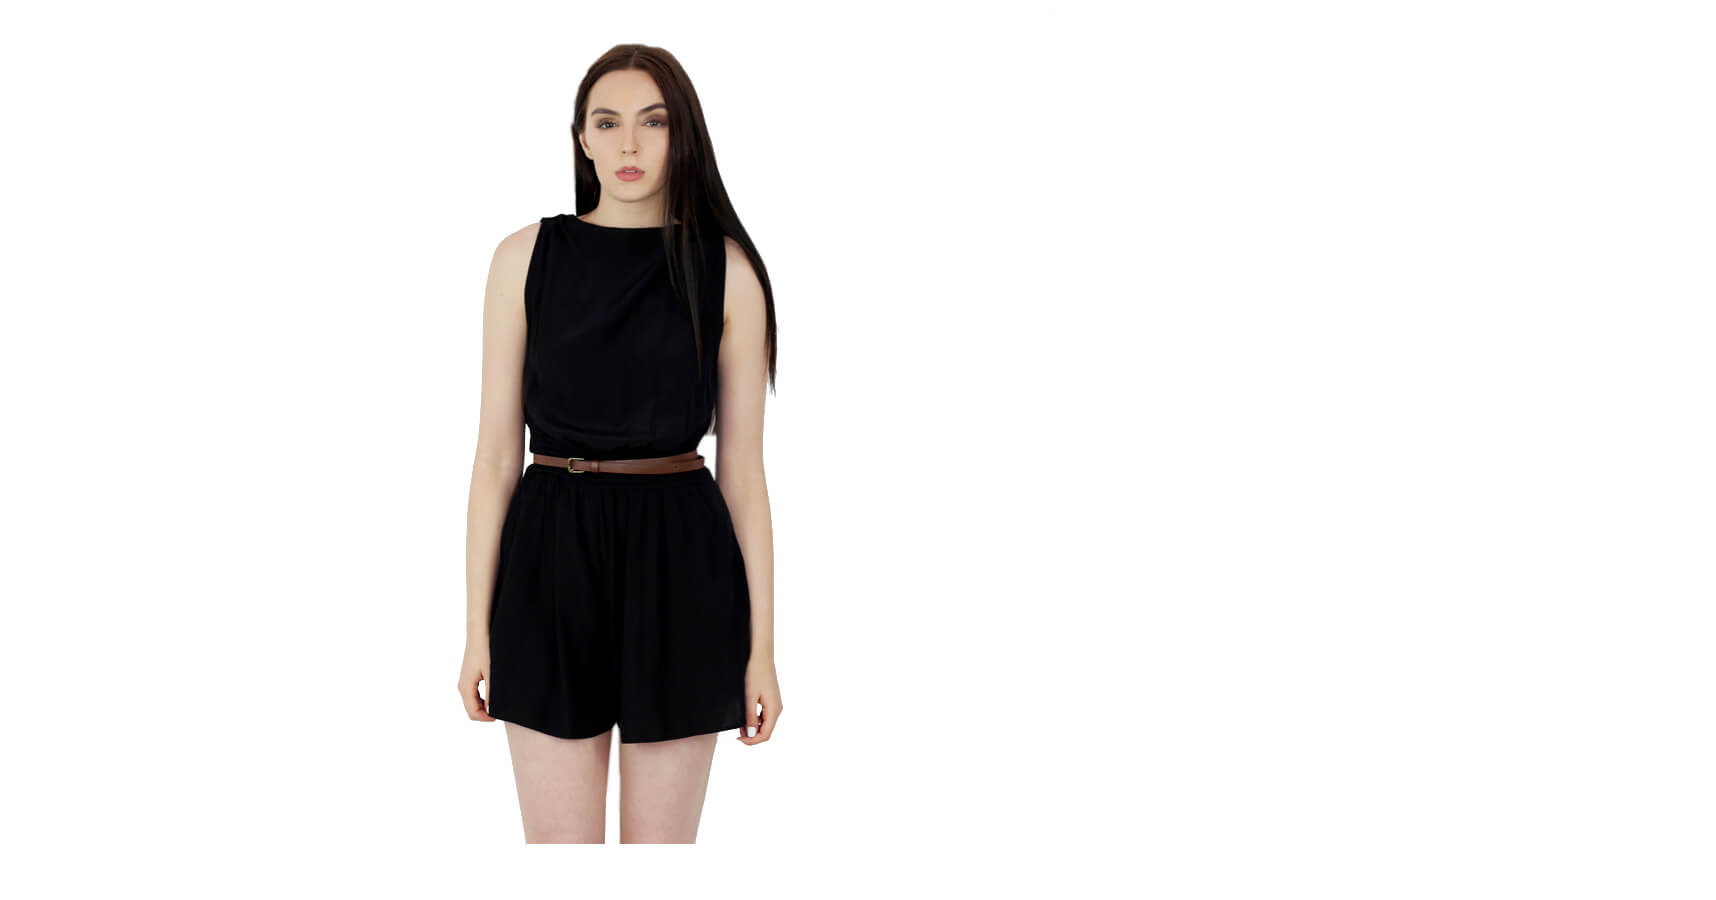 Ivy Playsuit Made from Recycled Polyester, by Madia & Matilda